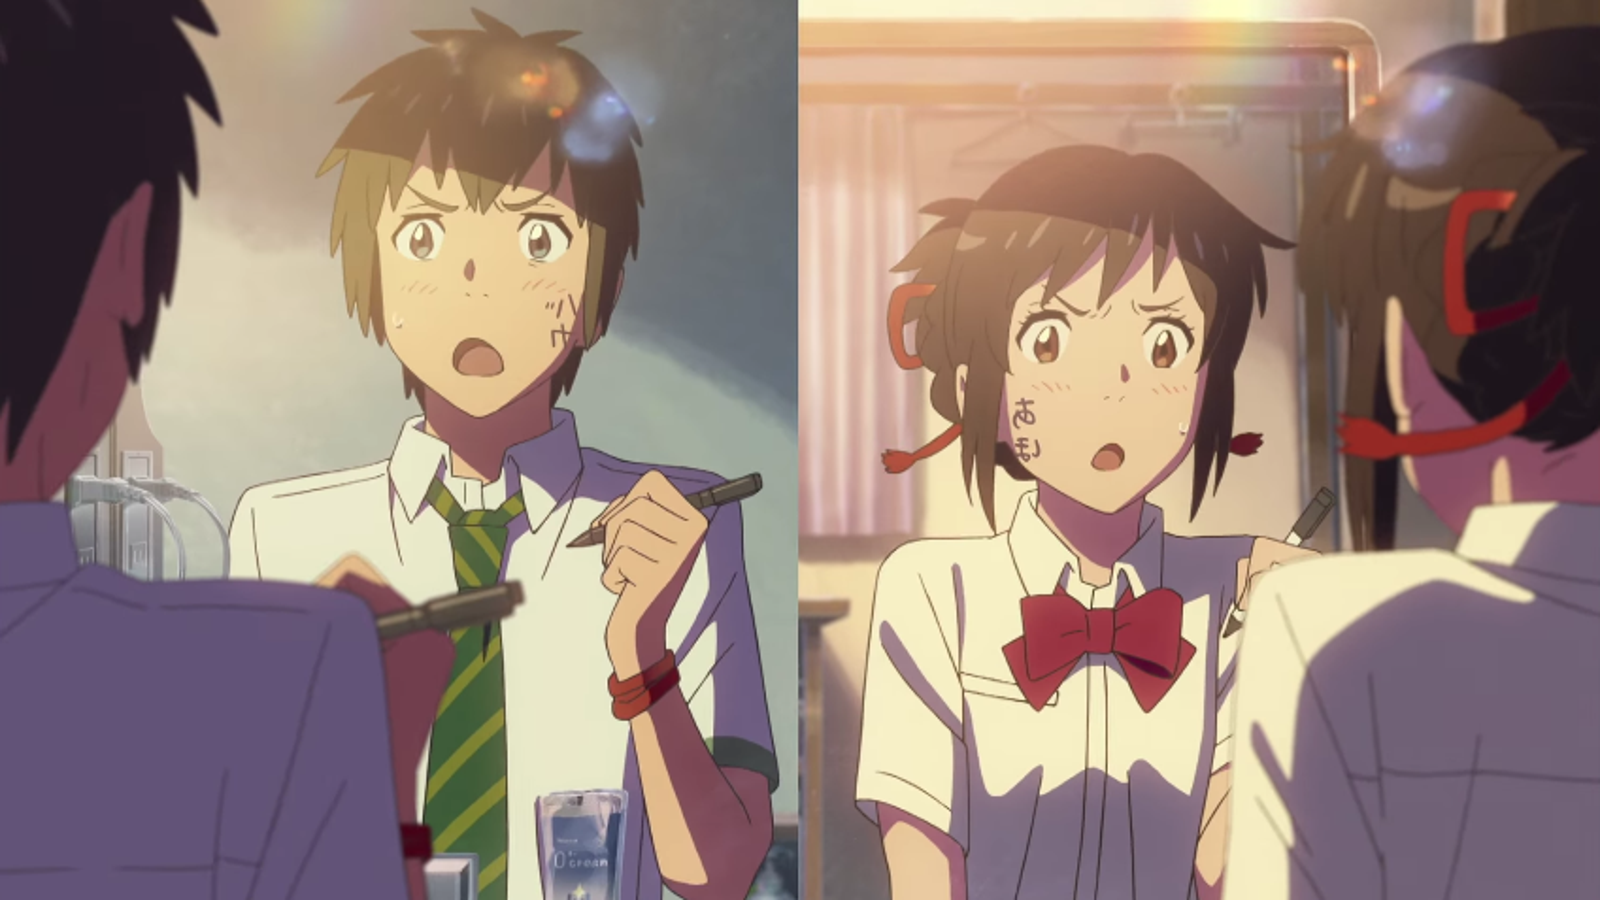 Your name is the highest grossing anime worldwide and it deserves to be